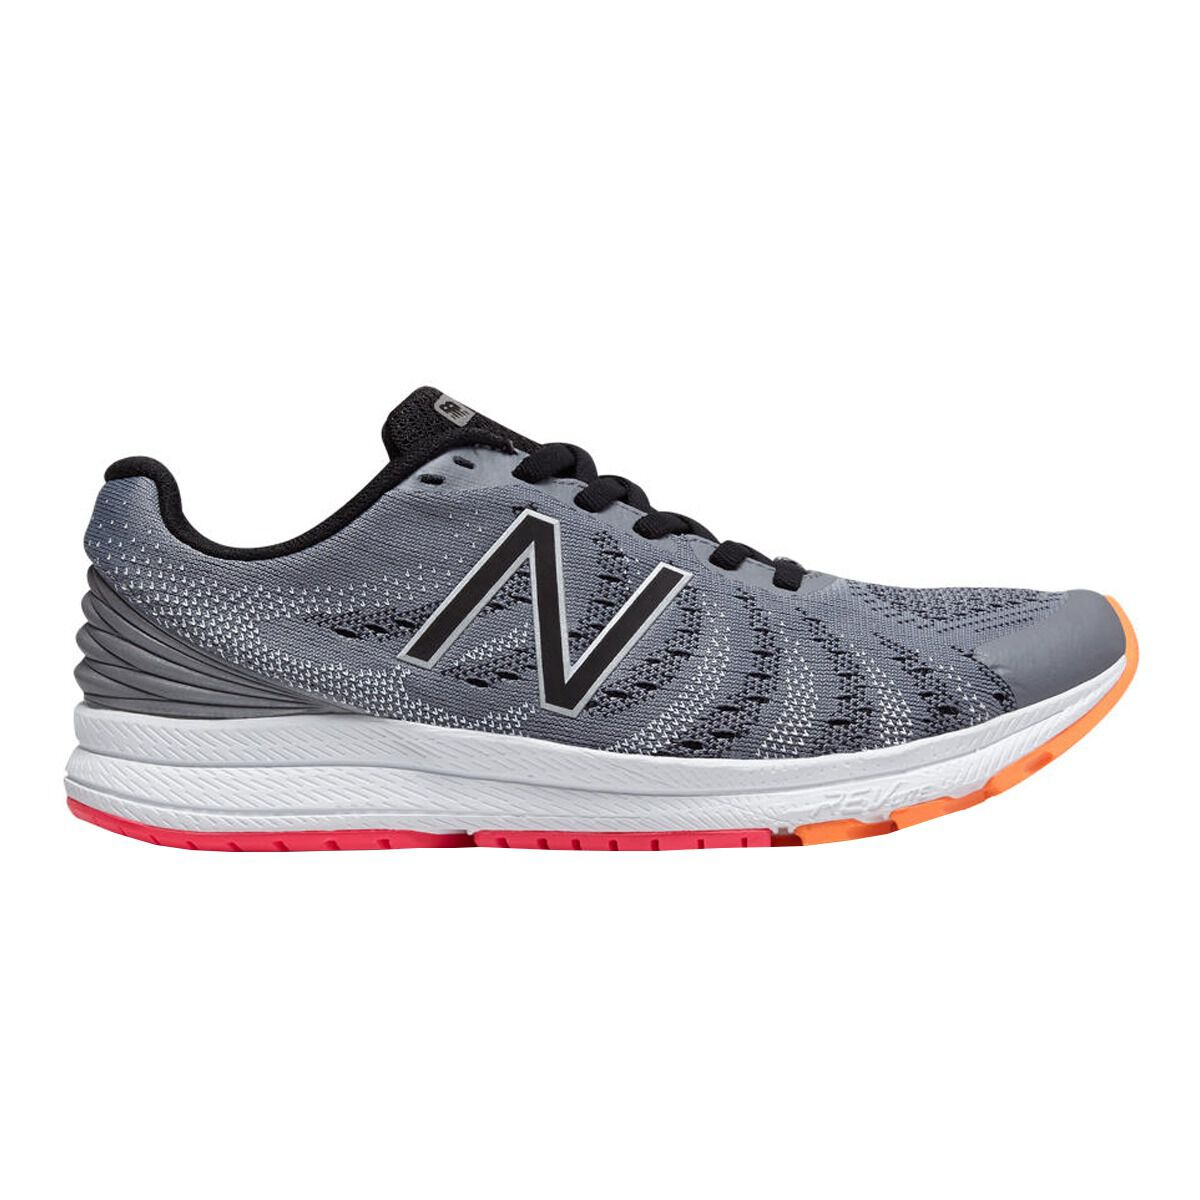 New Balance FuelCore Rush v3 Womens Running Shoes Grey Black US 7.5